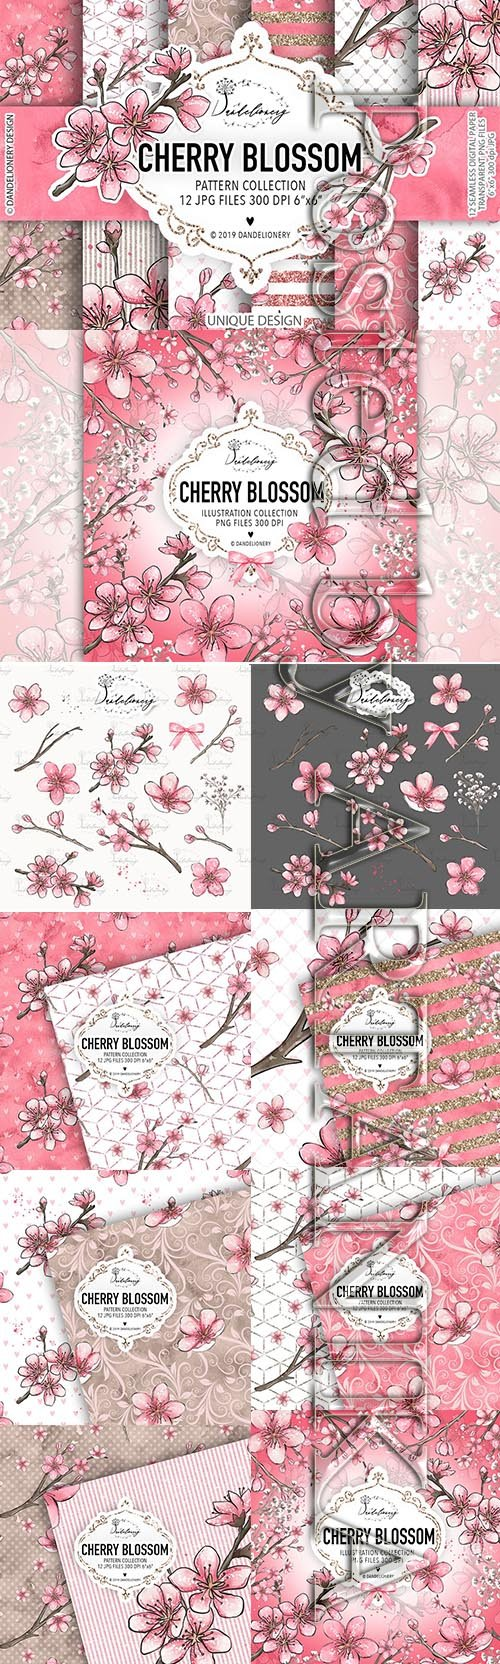 Cherry Blossom digital paper pack and Illustration Collection